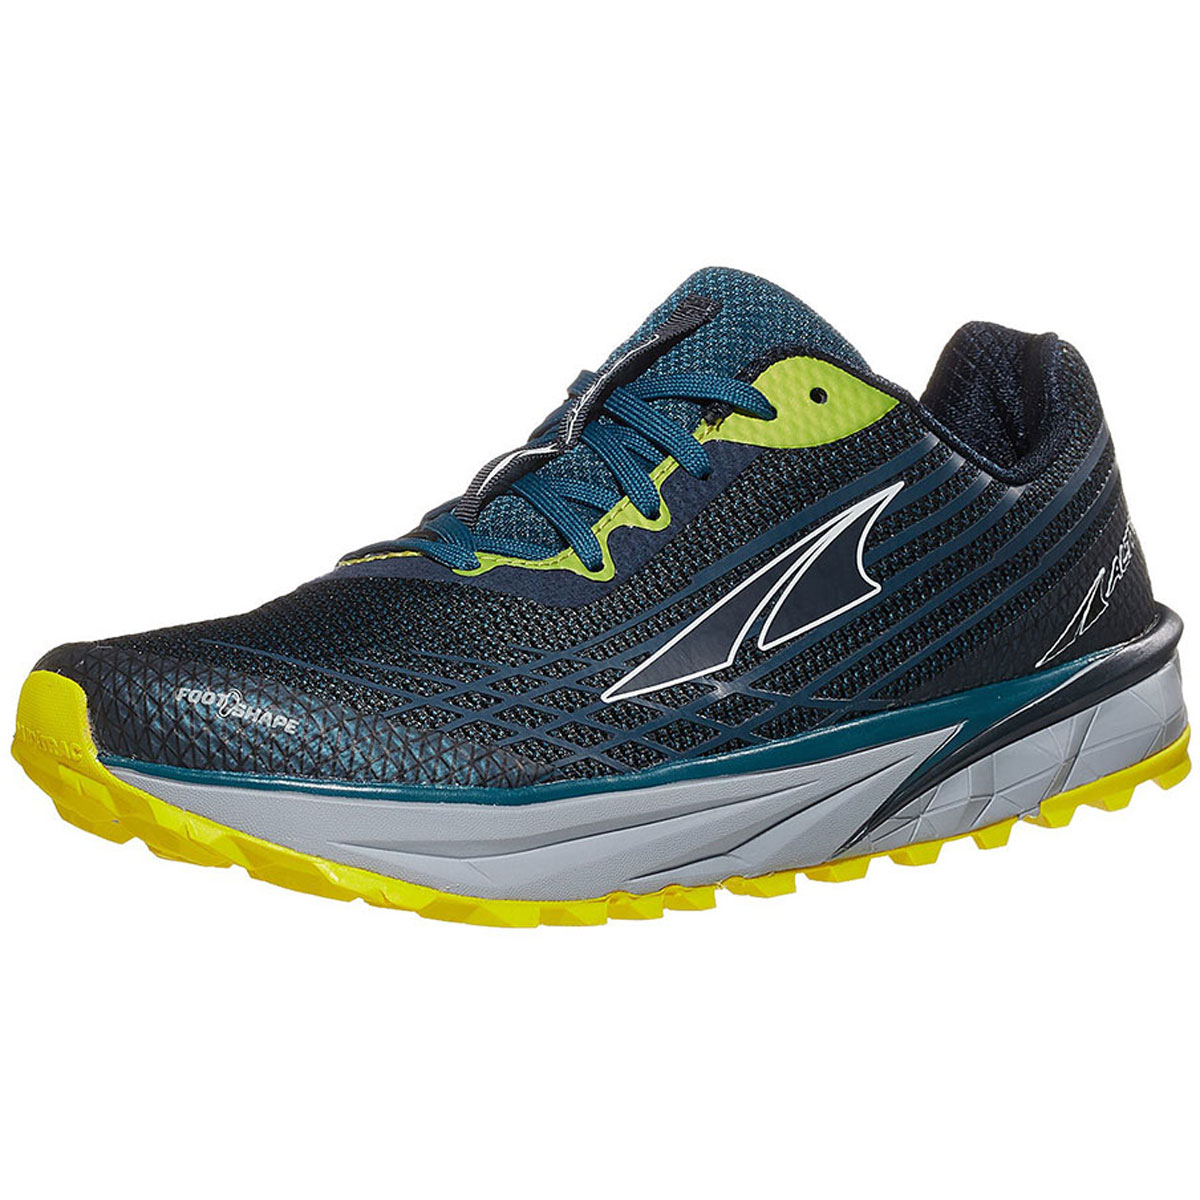 Men's Altra Timp 2 Running Shoe - Color: Moroccan Blue/Yellow (Regular Width) - Size: 10.5, Moroccan Blue/Yellow, large, image 4